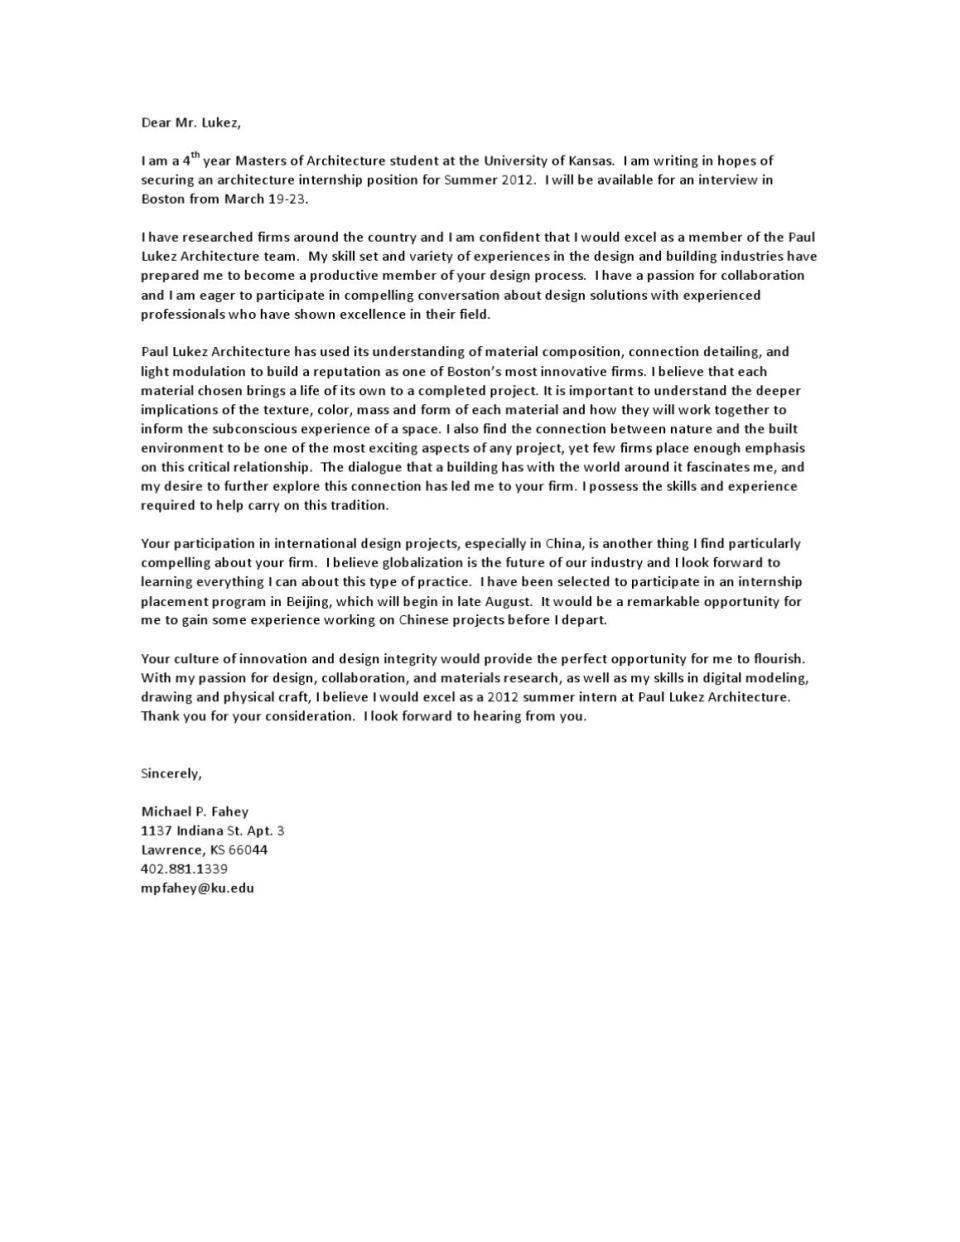 Paul Lukez Architects Cover Letter By Michael Fahey Issuu